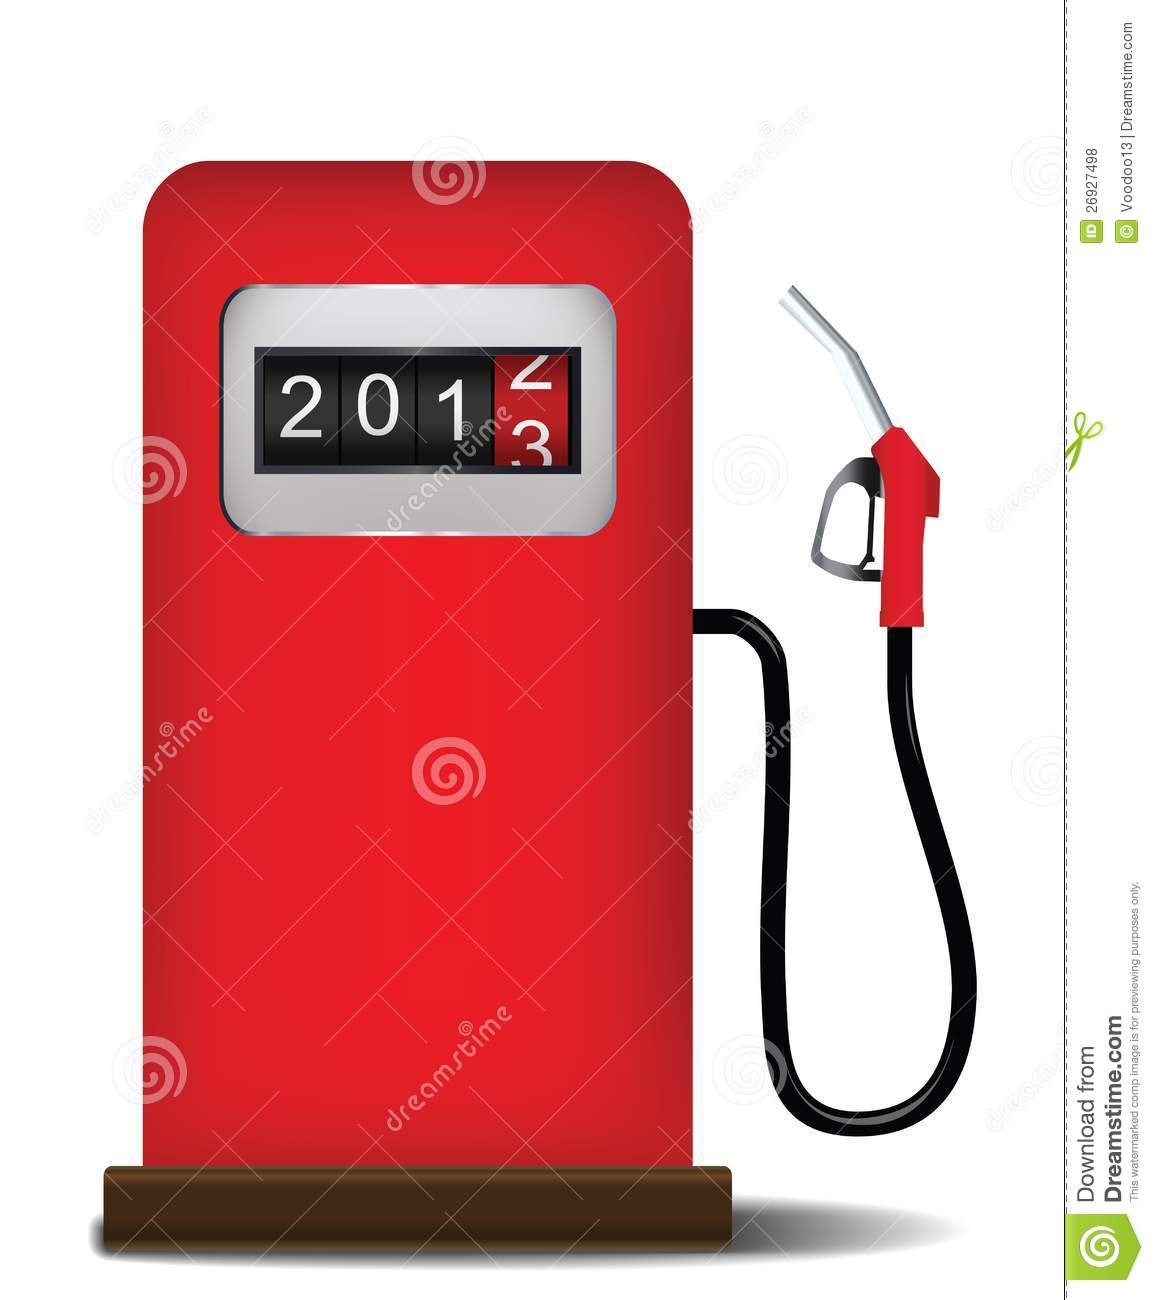 Gas Station Pump With Fuel Nozzle Royalty Free Stock Photos - Image ...